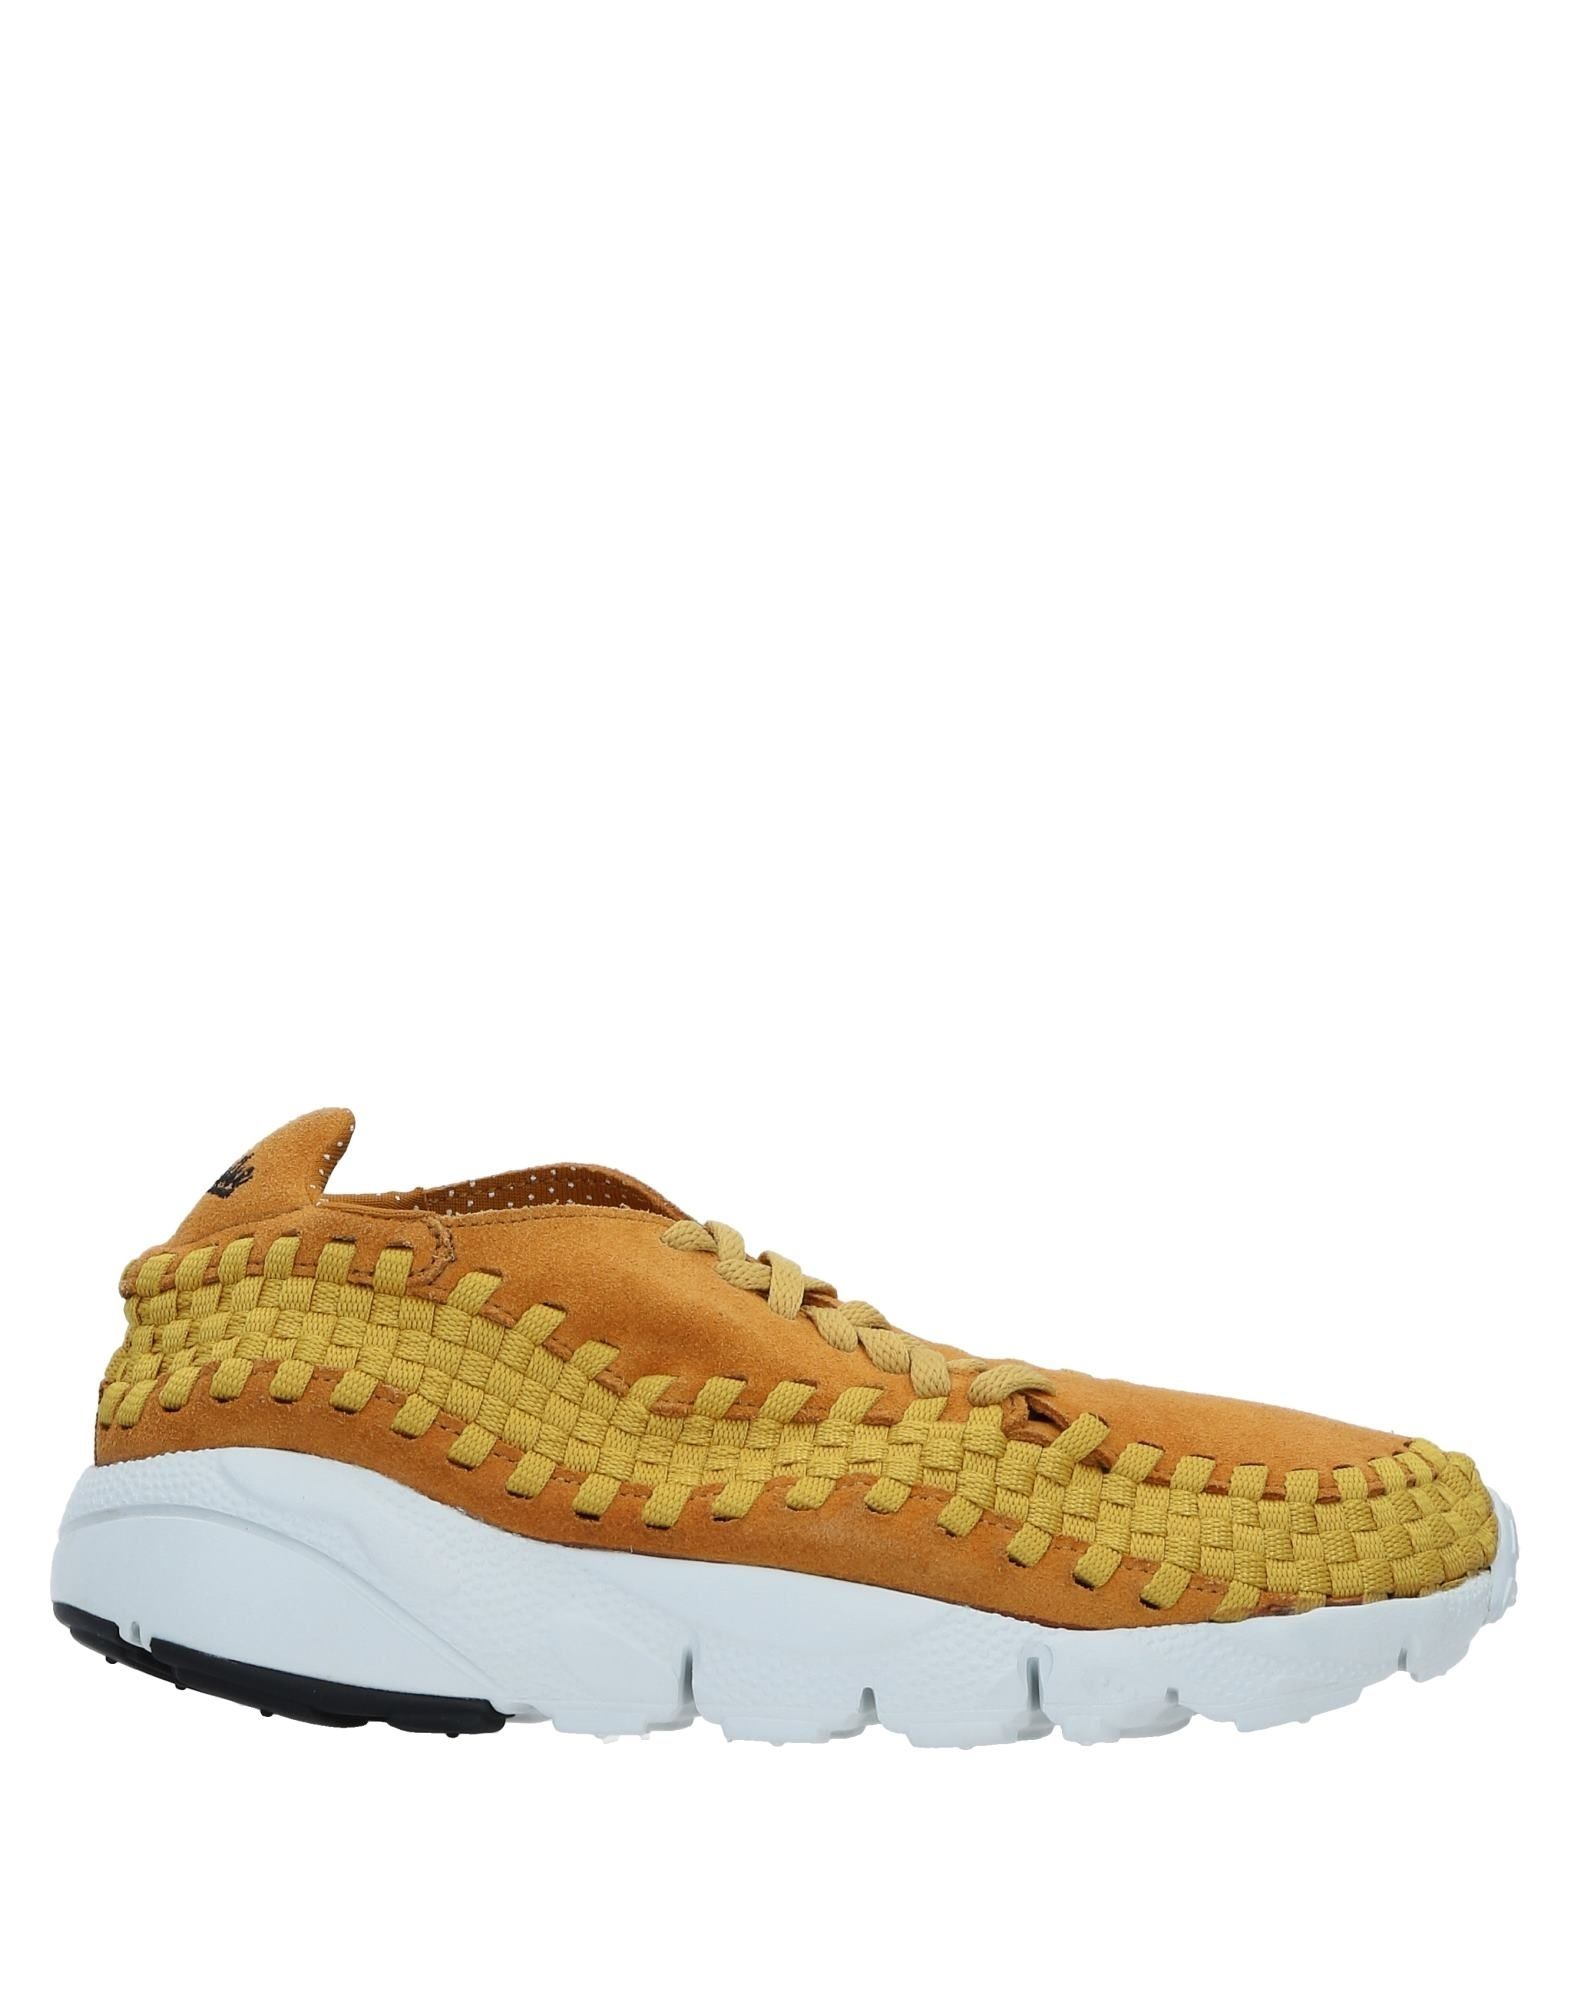 Sneakers Nike Homme Ocre - Sneakers Nike  Ocre Homme Dédouanement saisonnier a9744a